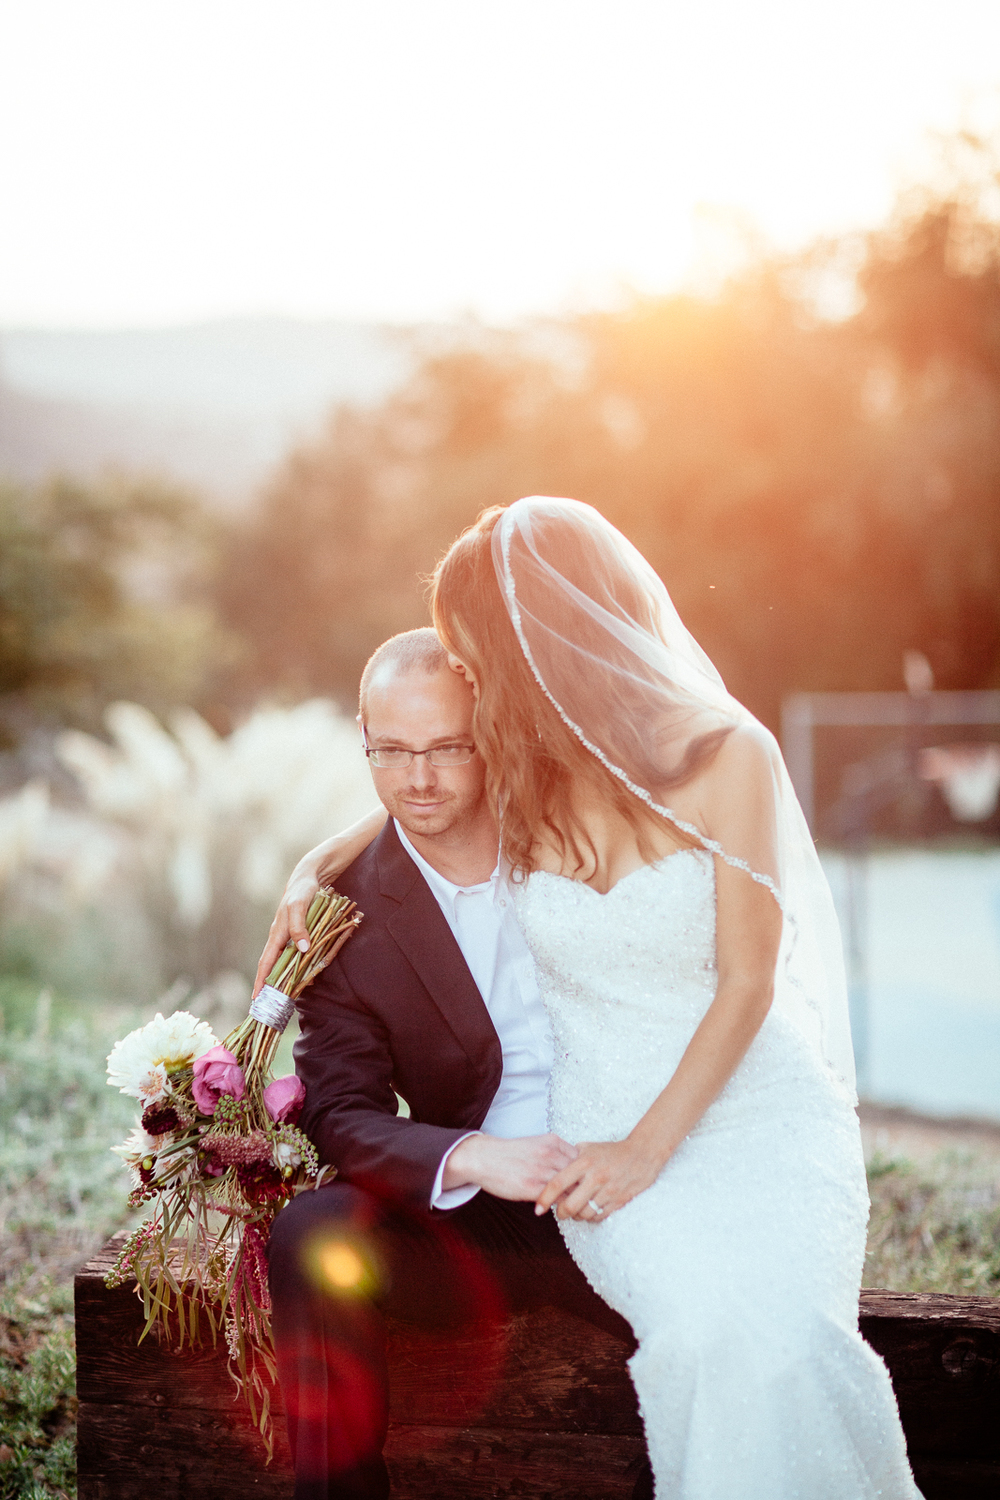 TORI_&_ALEX_WEDDING_2015_IMG_8553.JPG